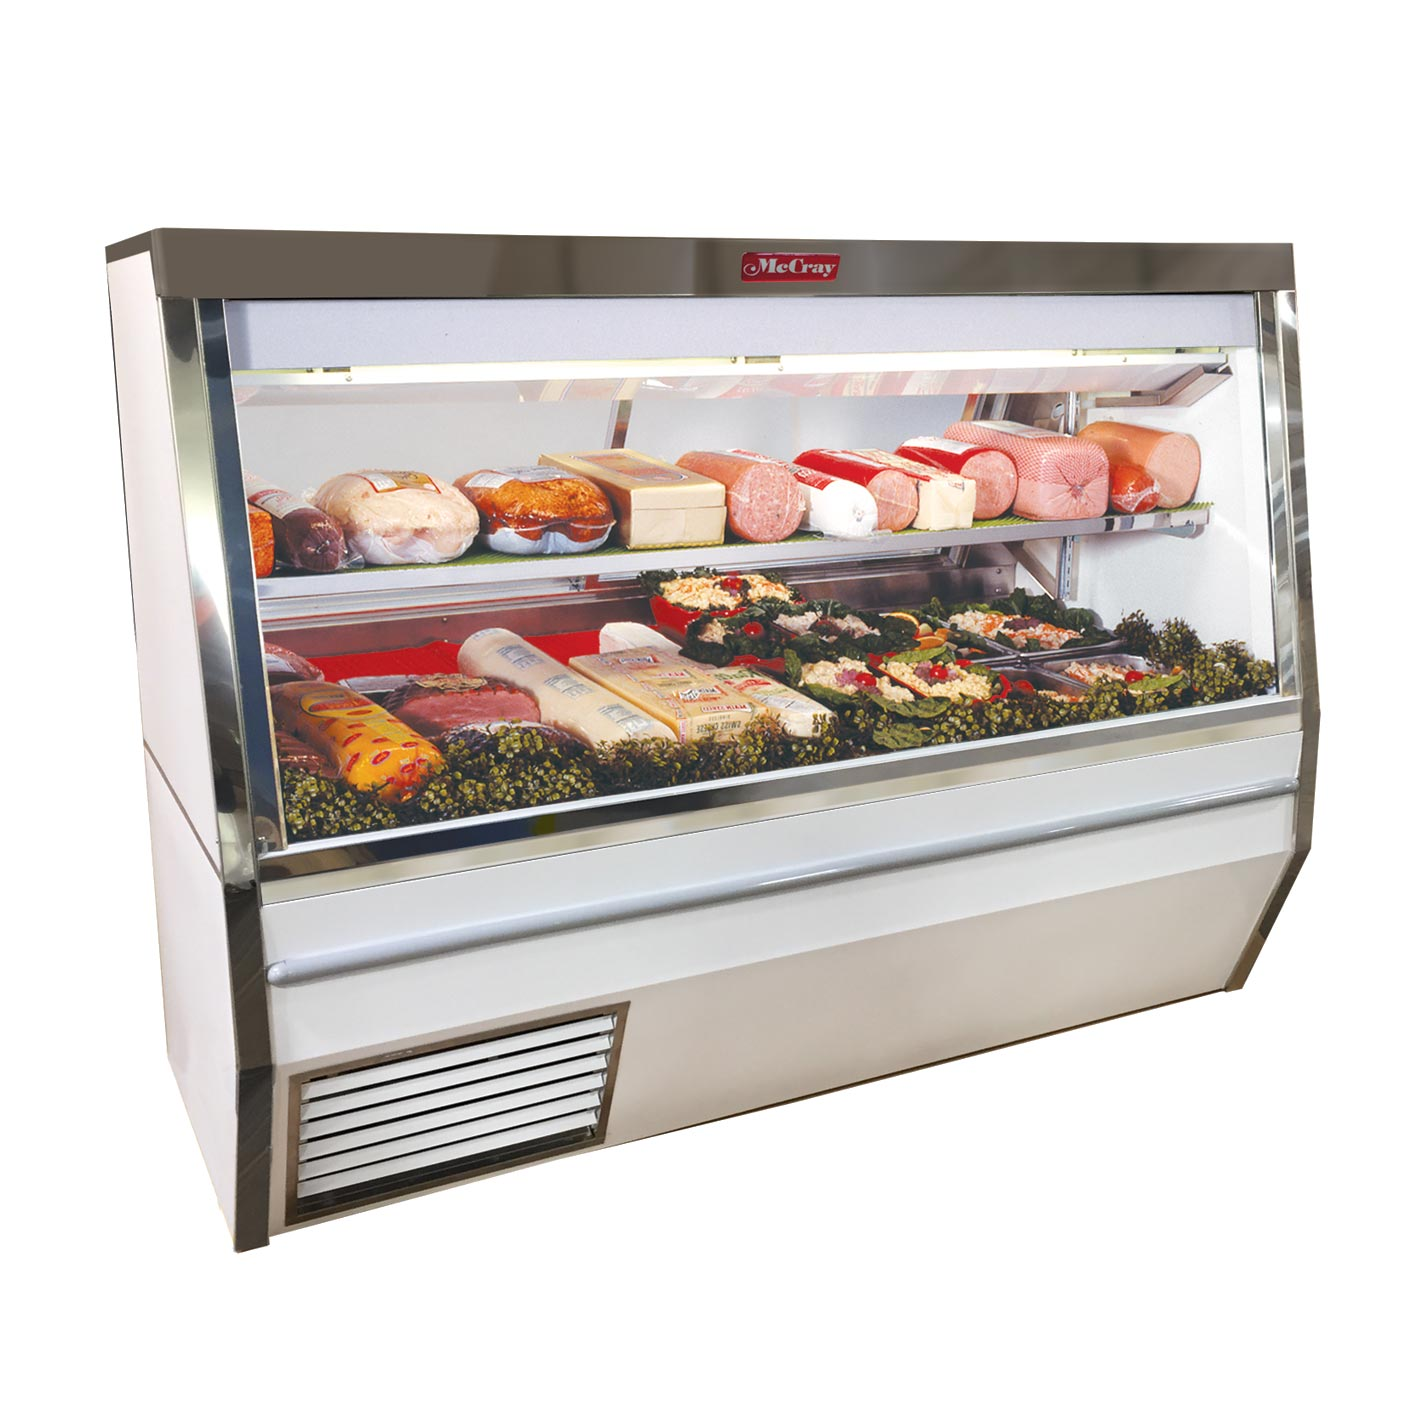 Howard-McCray SC-CDS34N-4-LS-LED display case, refrigerated deli